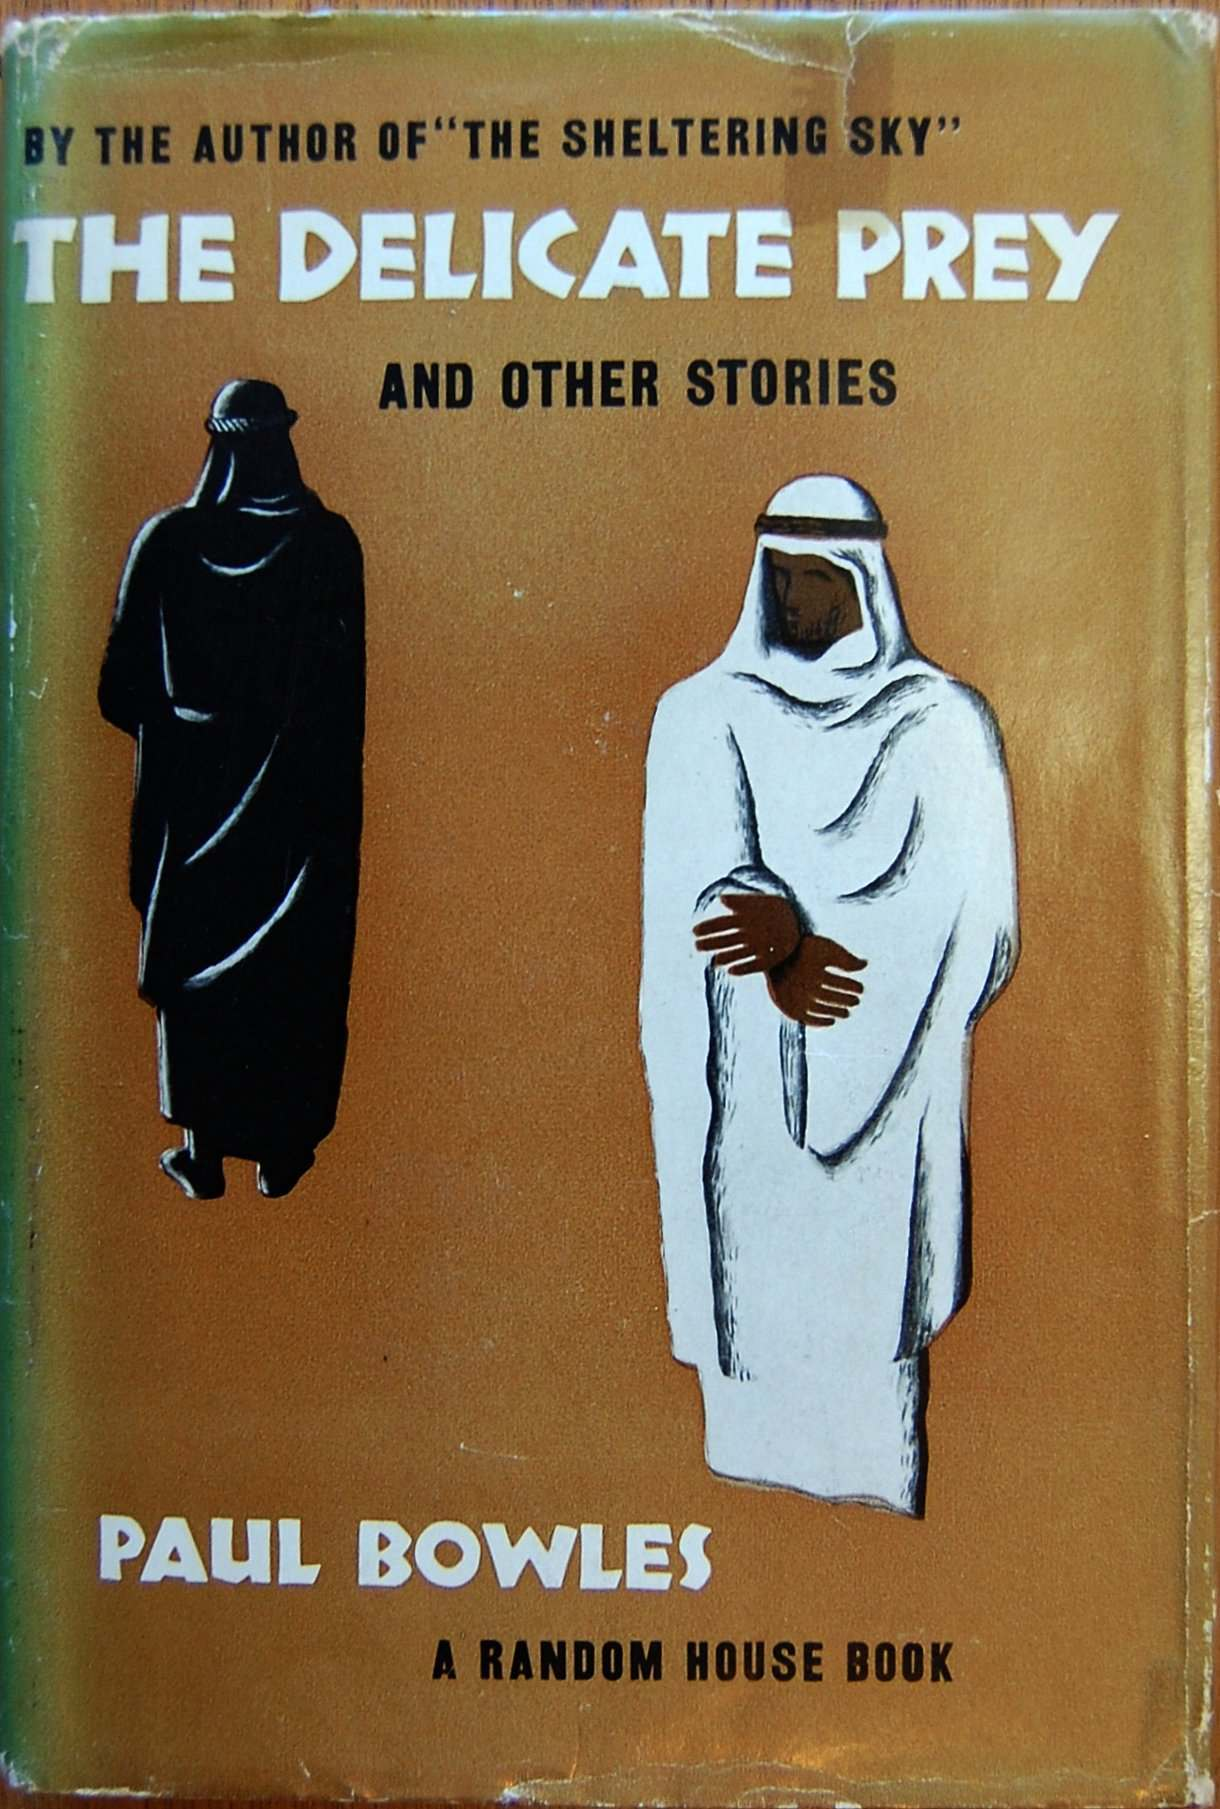 The Delicate Prey and Other Stories by Paul Bowles, c.1950.